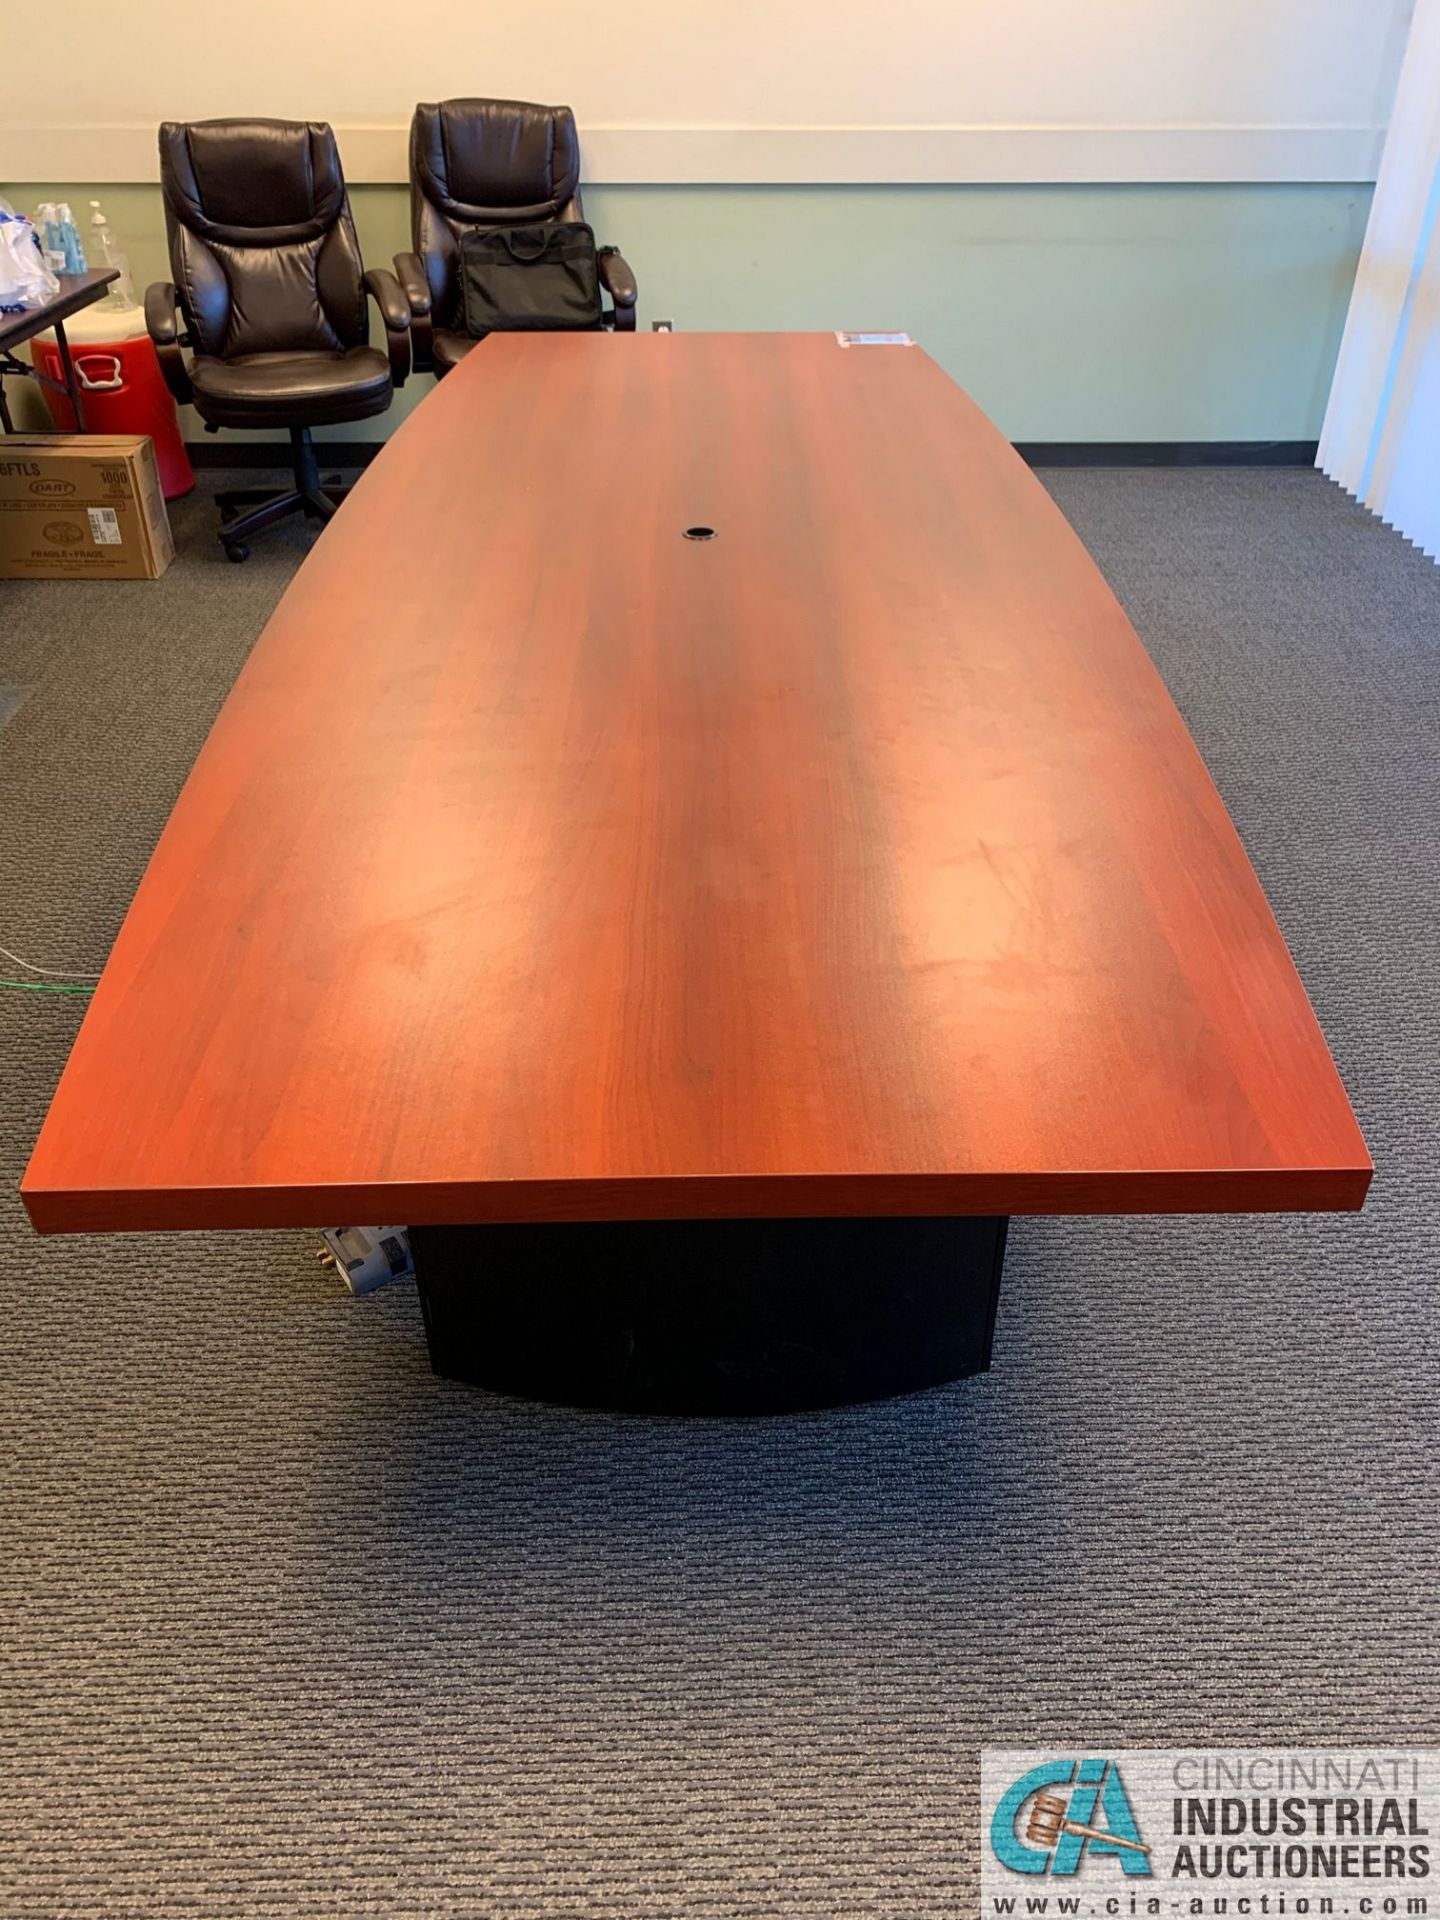 10' X 4' EXECUTIVE CONFERENCE TABLE (NO CHAIRS) (5400 OAKLEY INDUSTRIAL BLVD., FAIRBURN, GA 30213) - Image 3 of 4